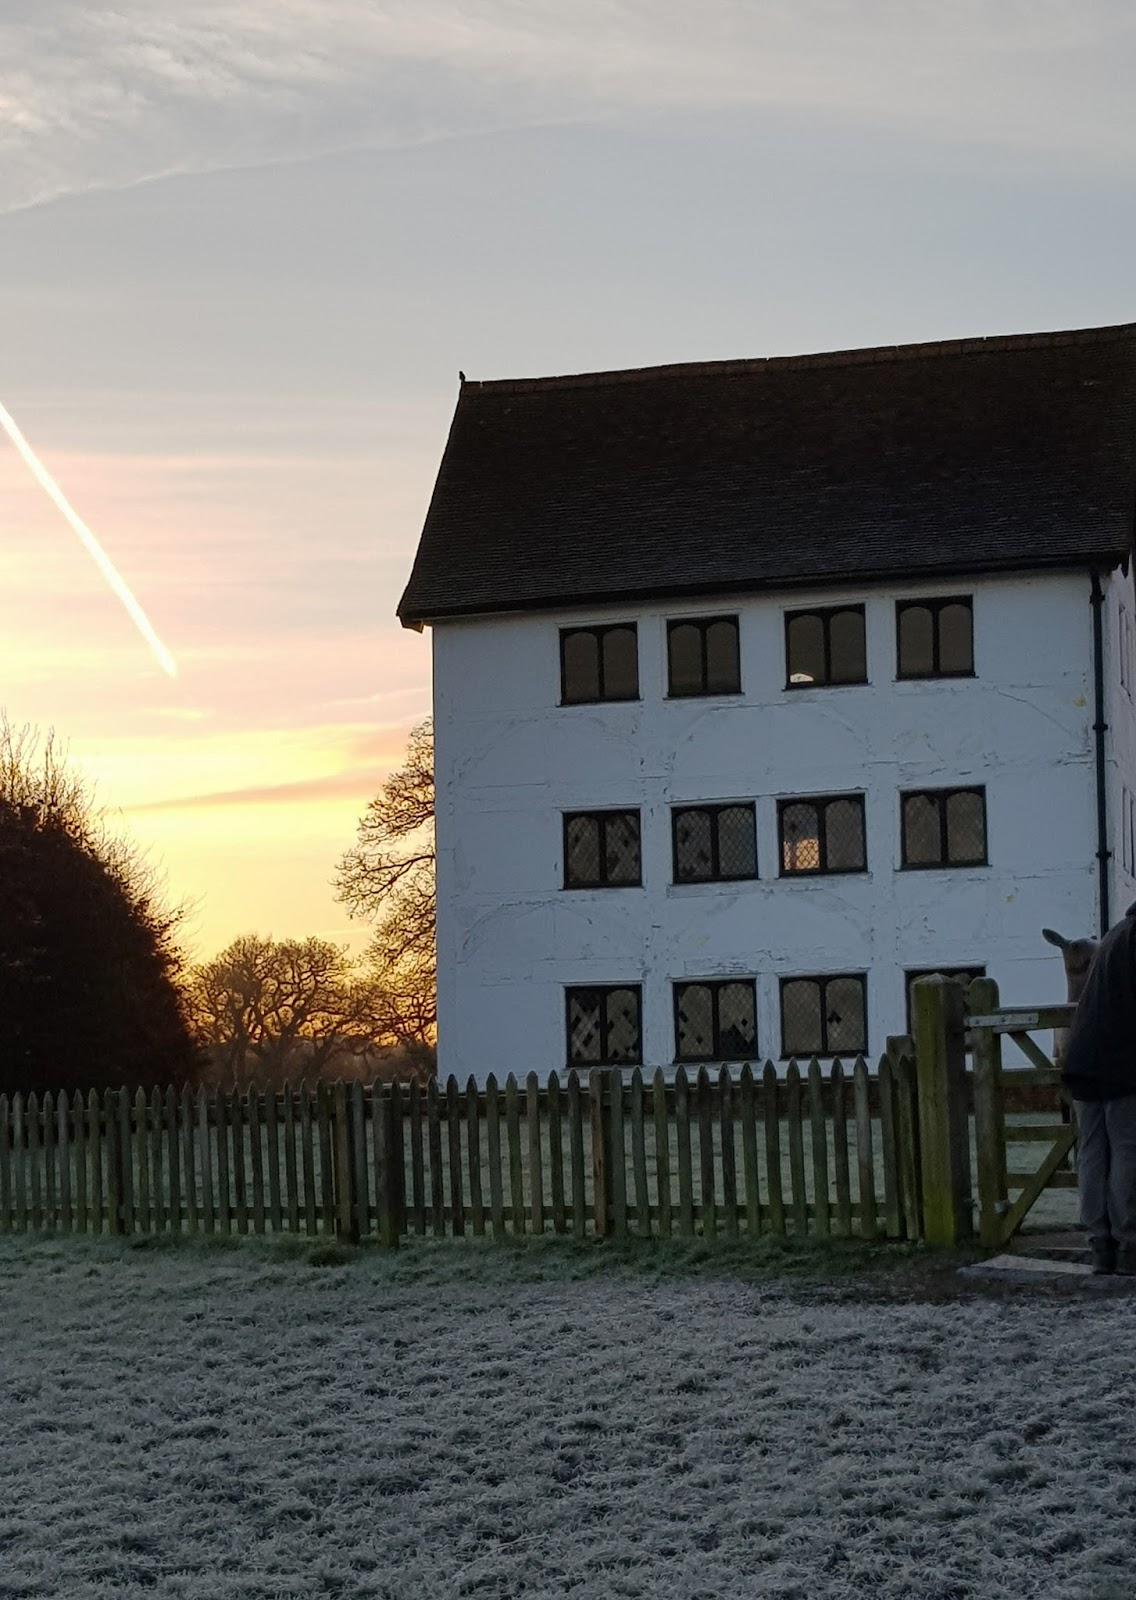 Image showing sunrise over the Queen Elizabeth 1 hunting lodge in Chingford on a crisp frosty day